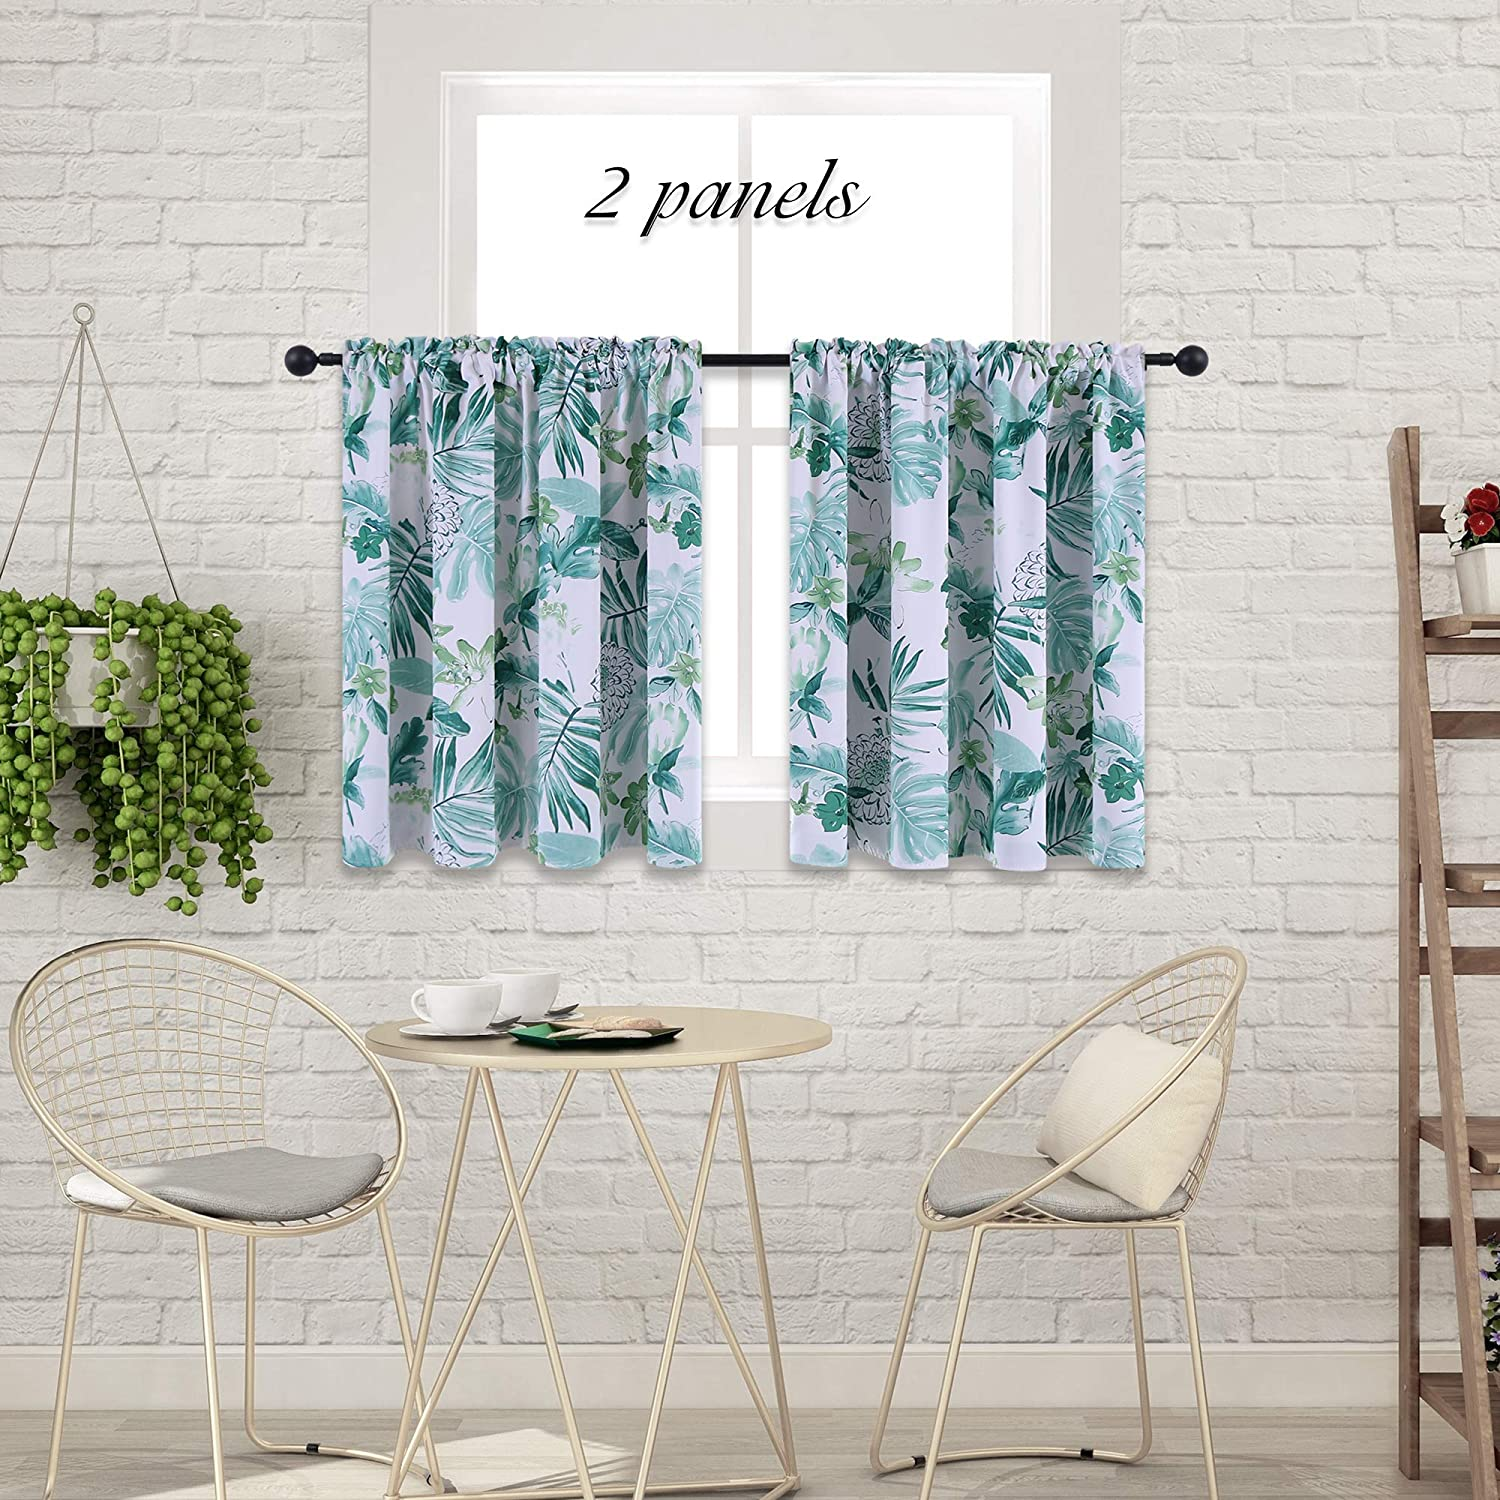 HOLKING Window Curtains Tiers-Green Floral Pattern Blackout Curtain Valances for Living Room (52-inch x 36-inch, Rod Pocket, 2 Panels)